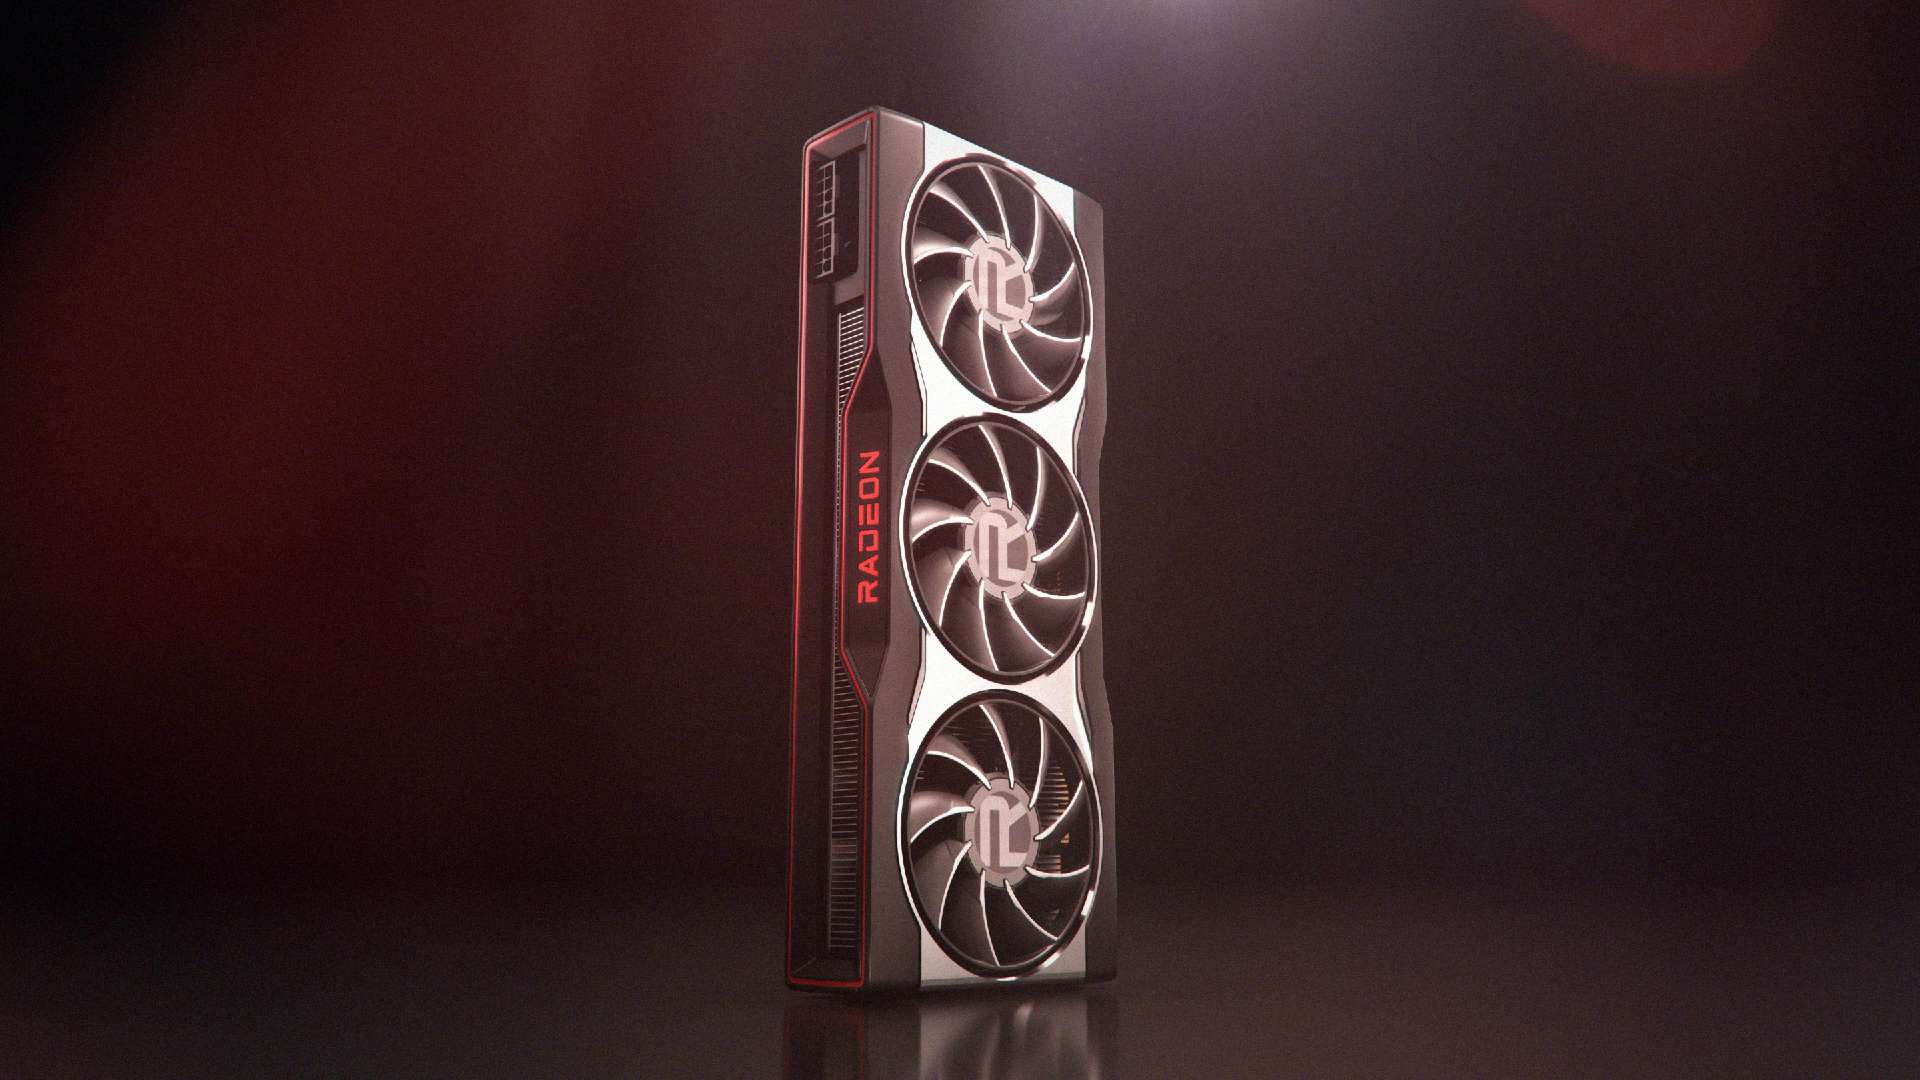 AMD'S RX 6700 XT could be arriving March 18